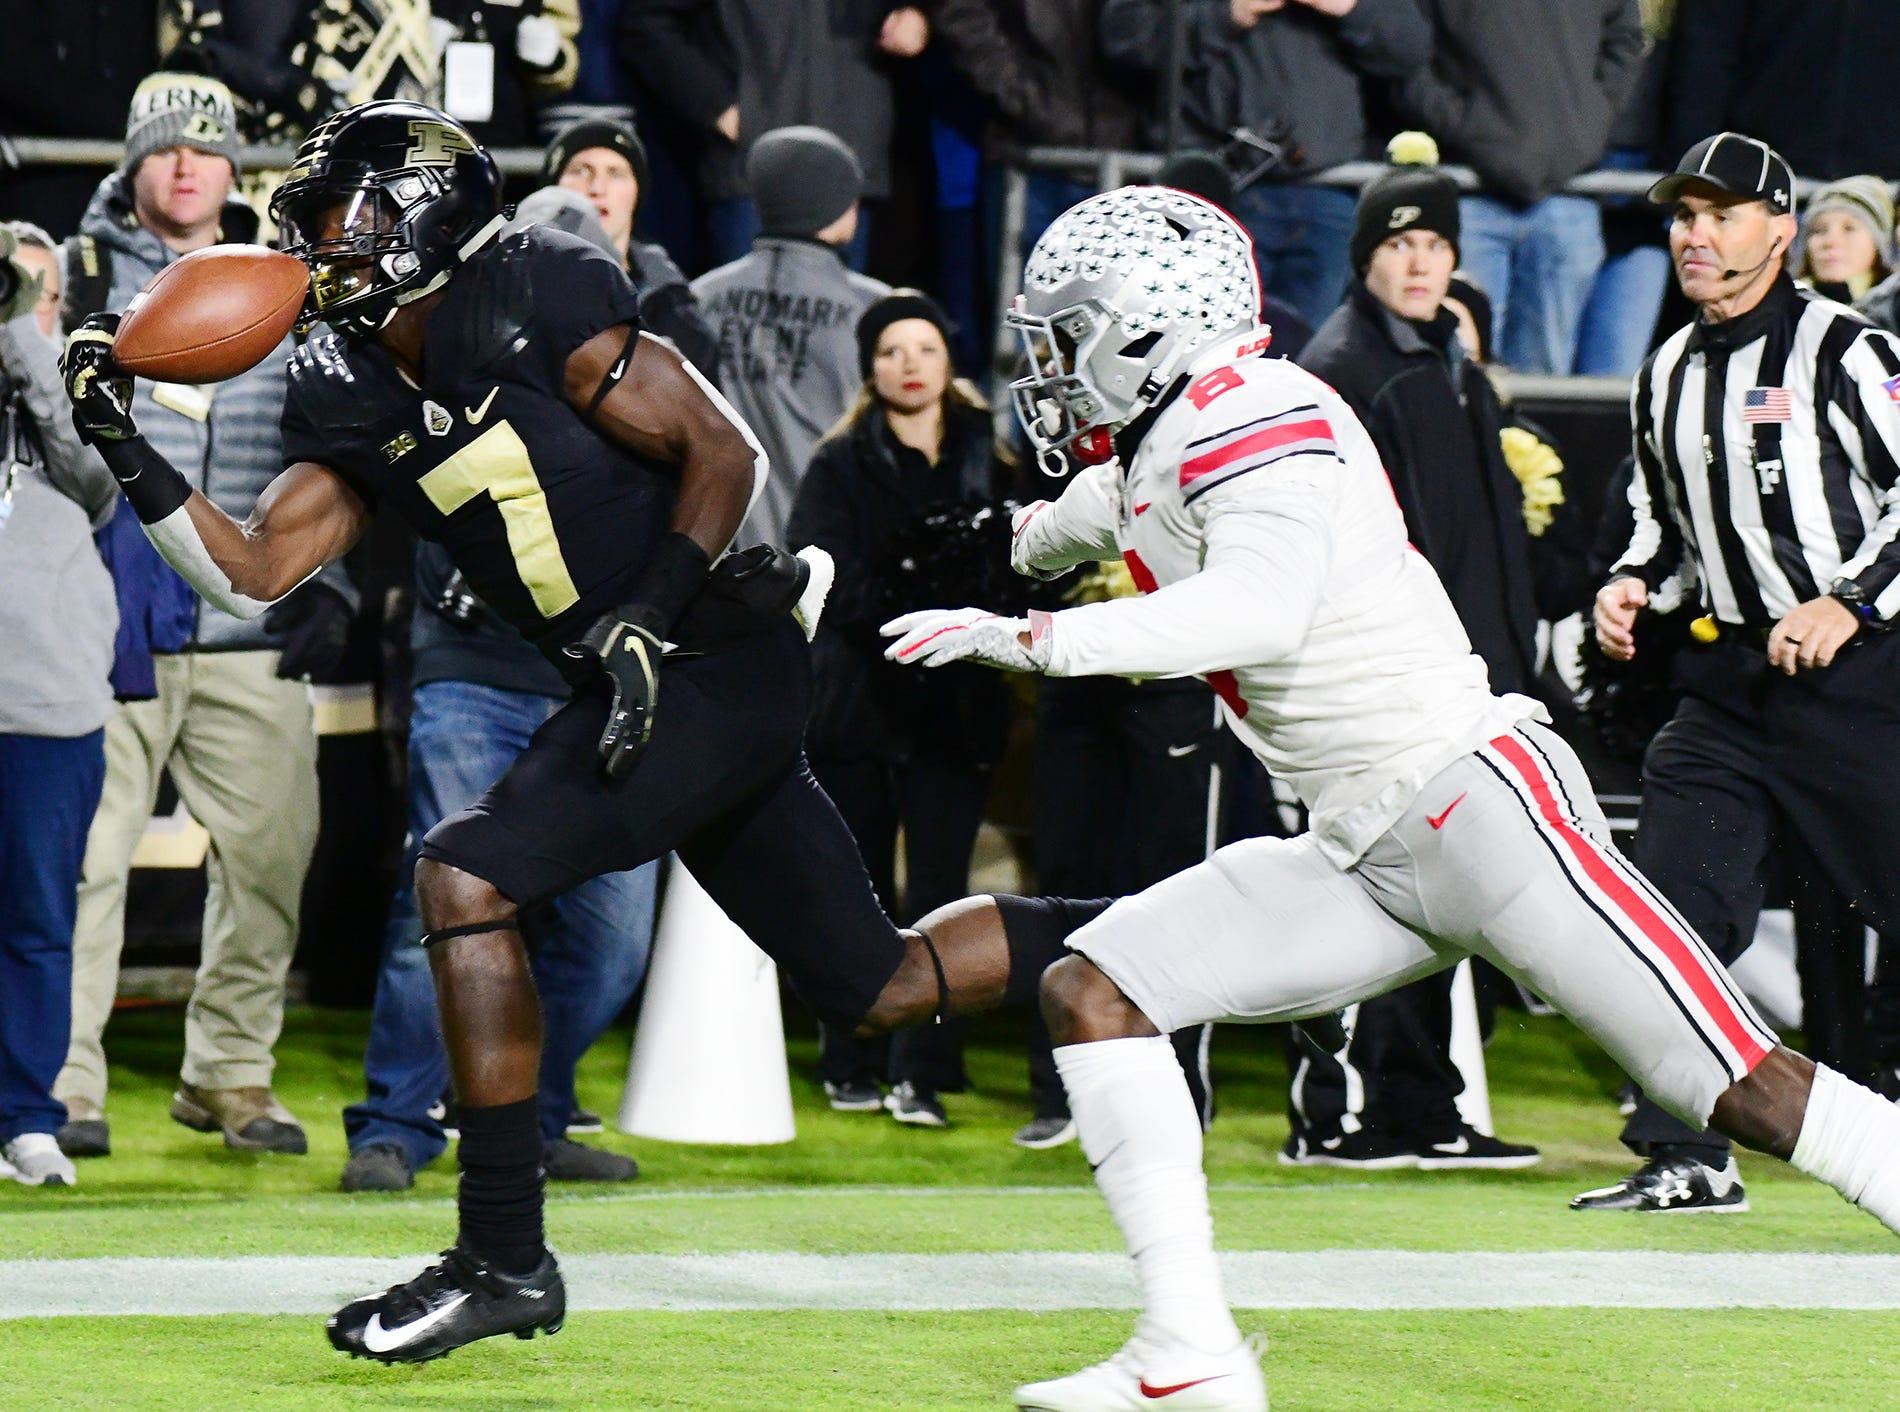 Isaac Zico of Purdue hauls in a touchdown pass in the first half against Ohio State Saturday, October 20, 2018, at Ross-Ade Stadium.